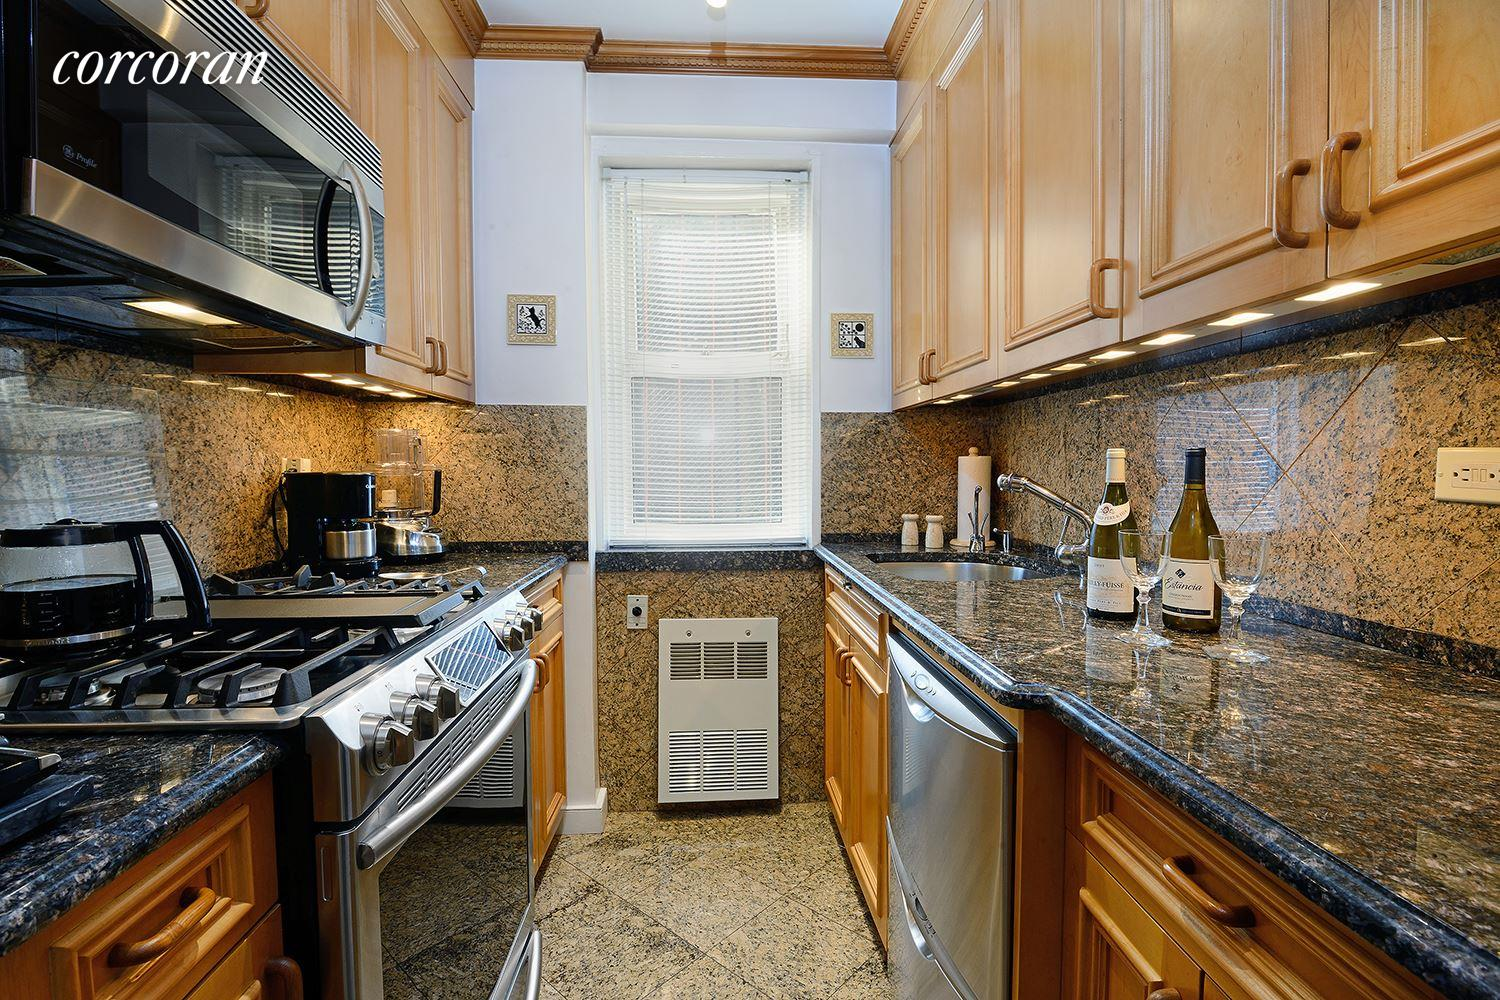 Kitchen cabinets 65th street brooklyn -  30 East 65th Street